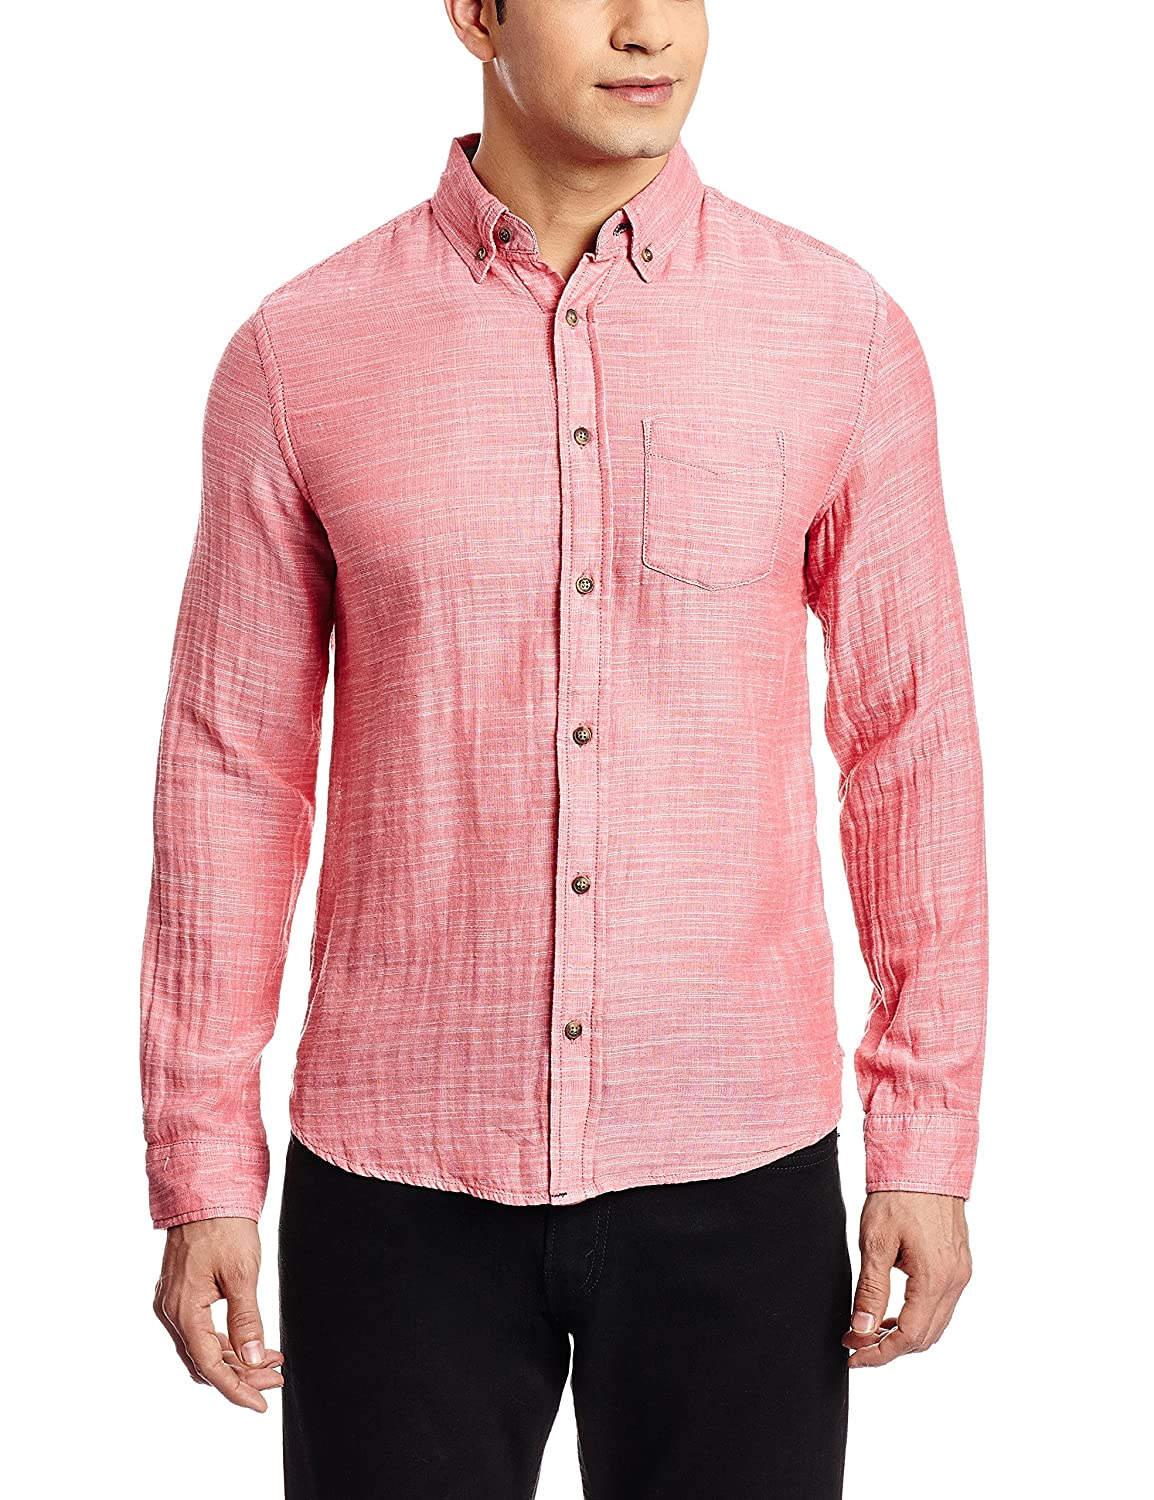 Amazon Exclusive !!! Minimum 40% off On Aeropostale Men's Clothing  By Amazon | Aeropostale Men's Casual Shirt @ Rs.1,199